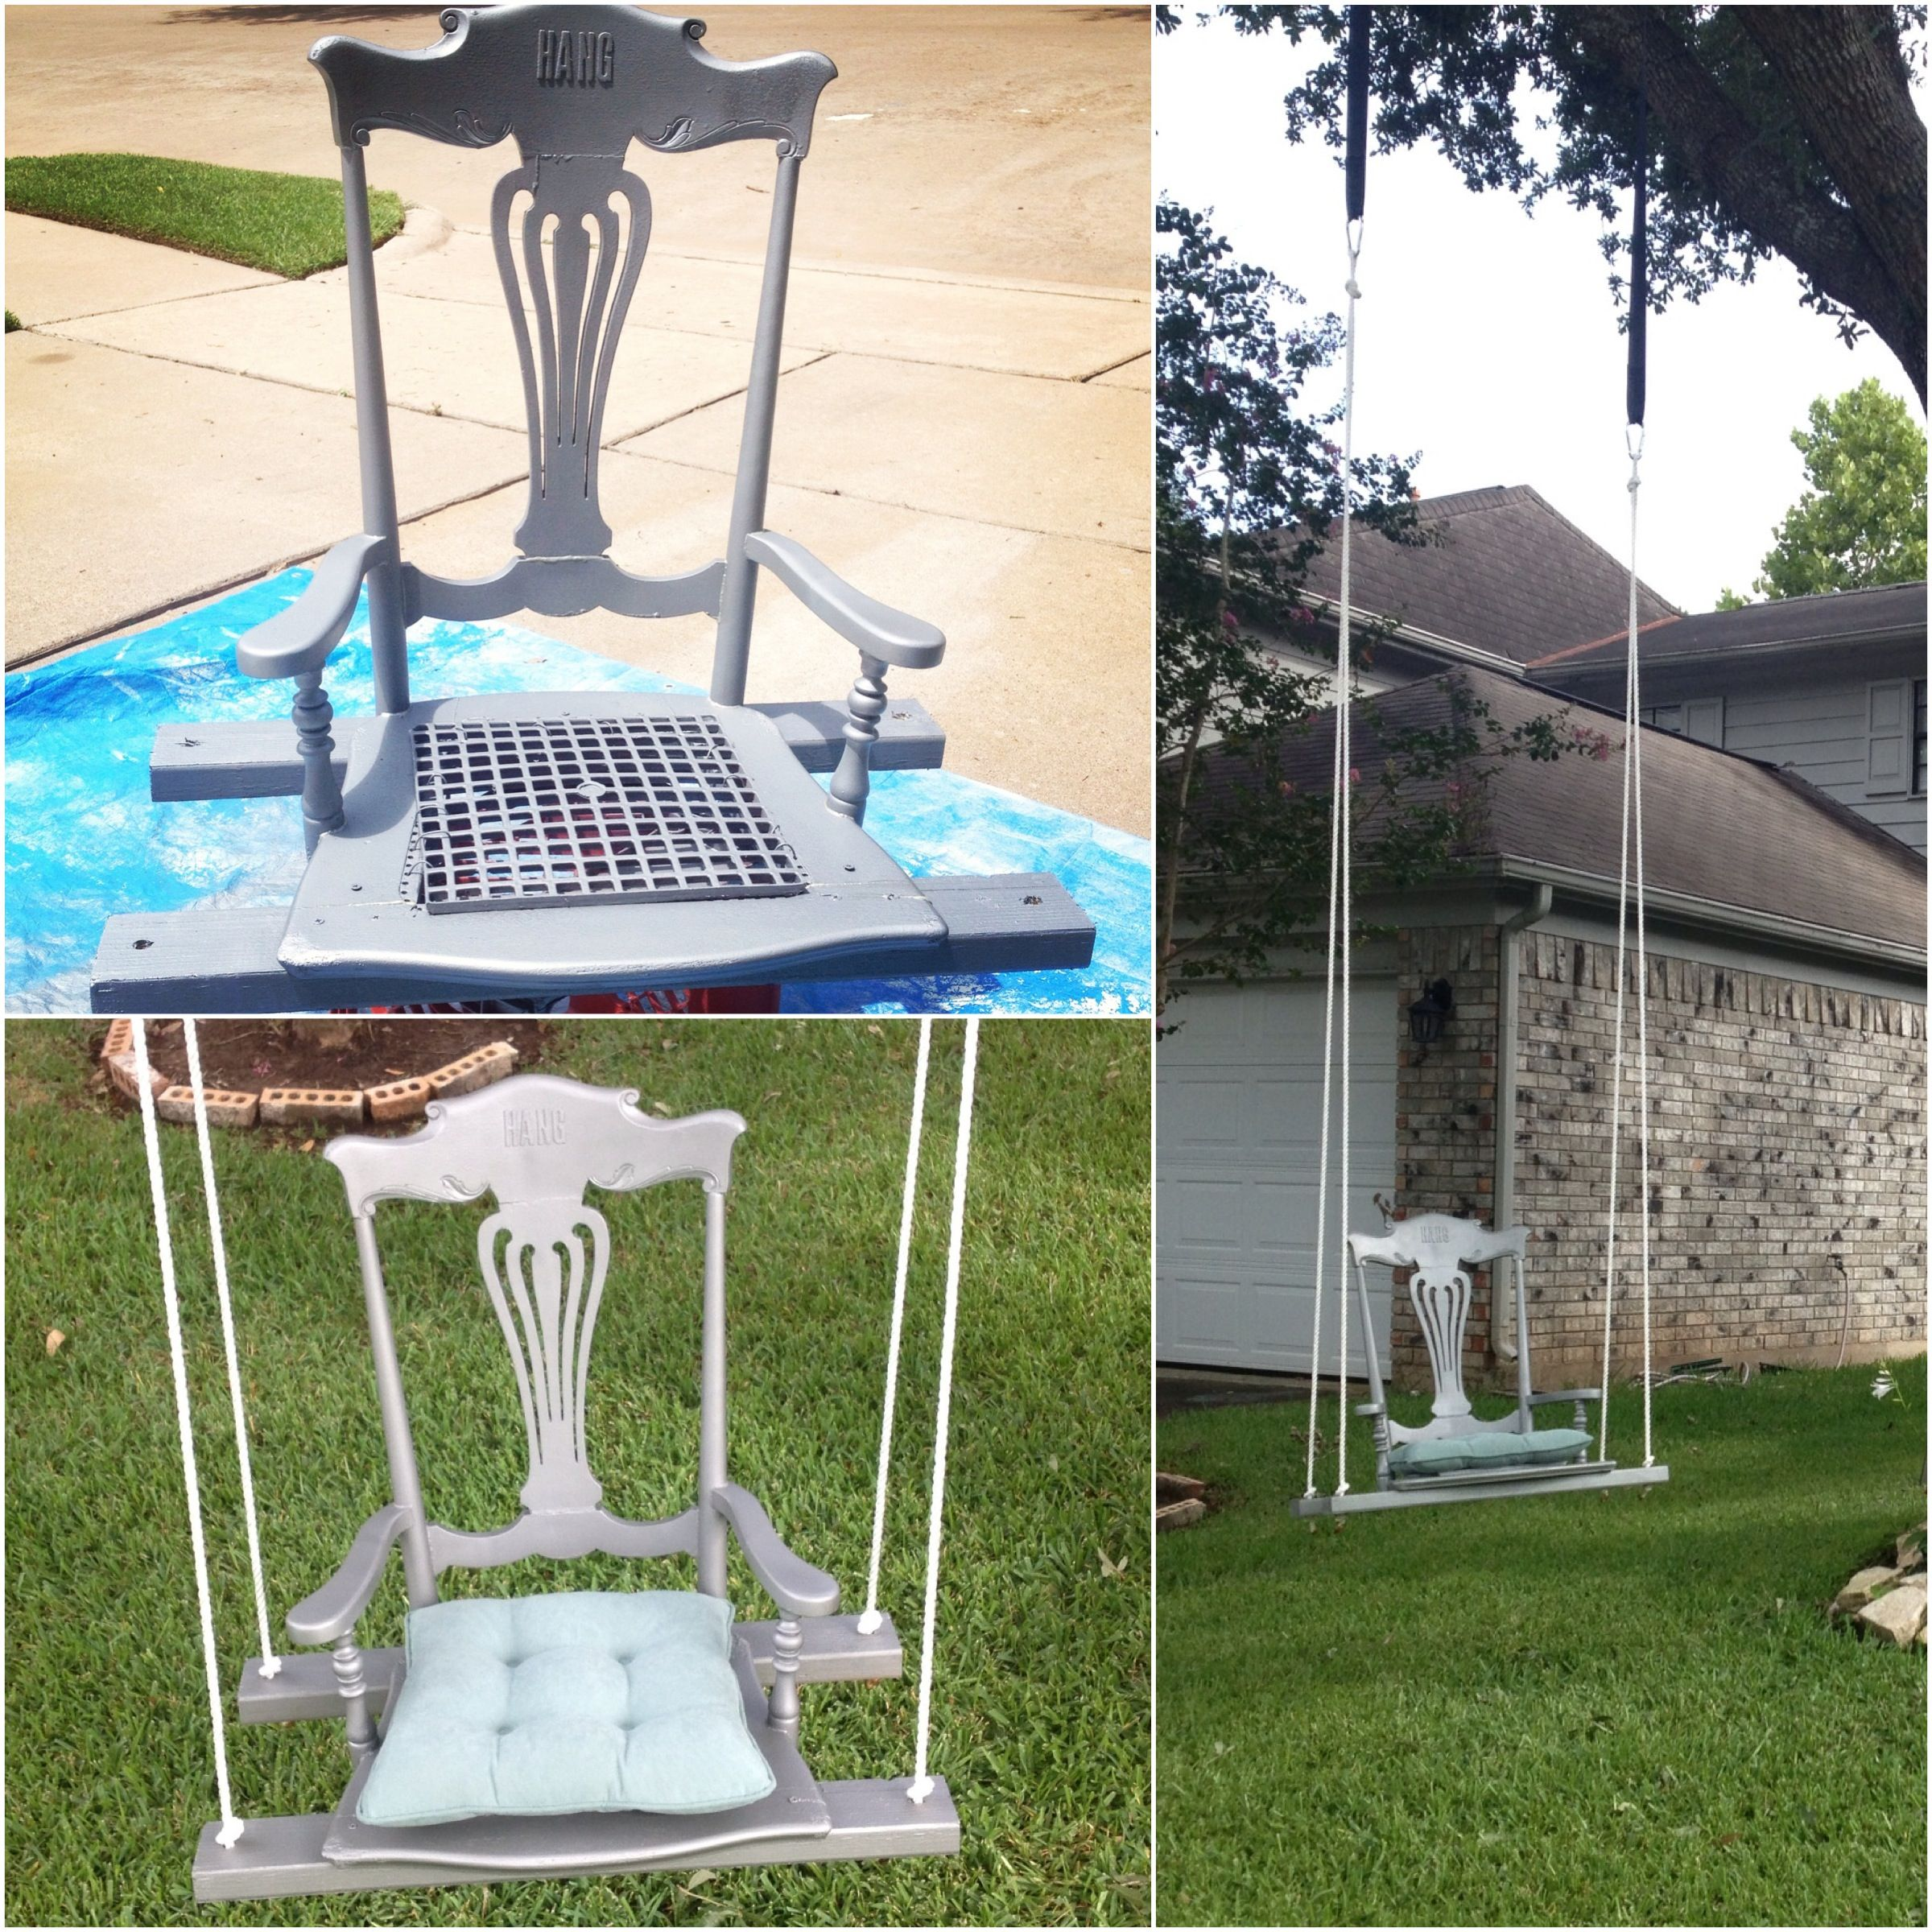 ideas inspirational picnic images swinging watchthetrailerfo furniture wooden decoration chair swing new outdoor table of